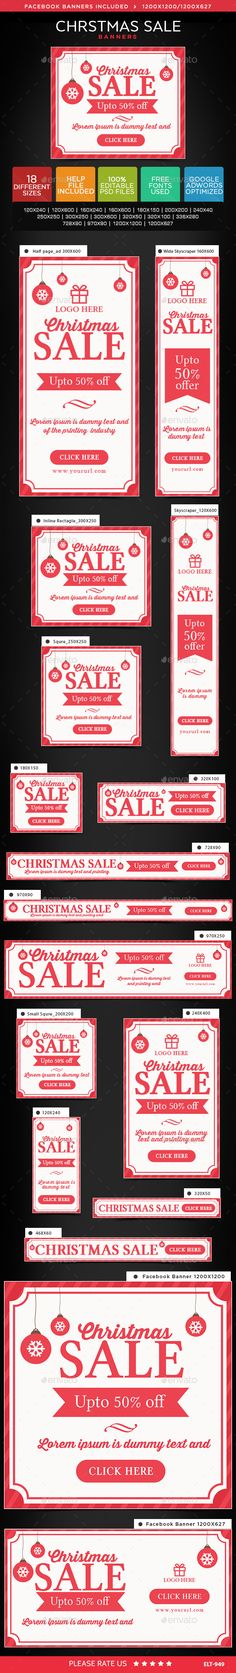 Promote your Products and services with this great looking Banner Set. 16 awesome quality banner template PSD files ready for you